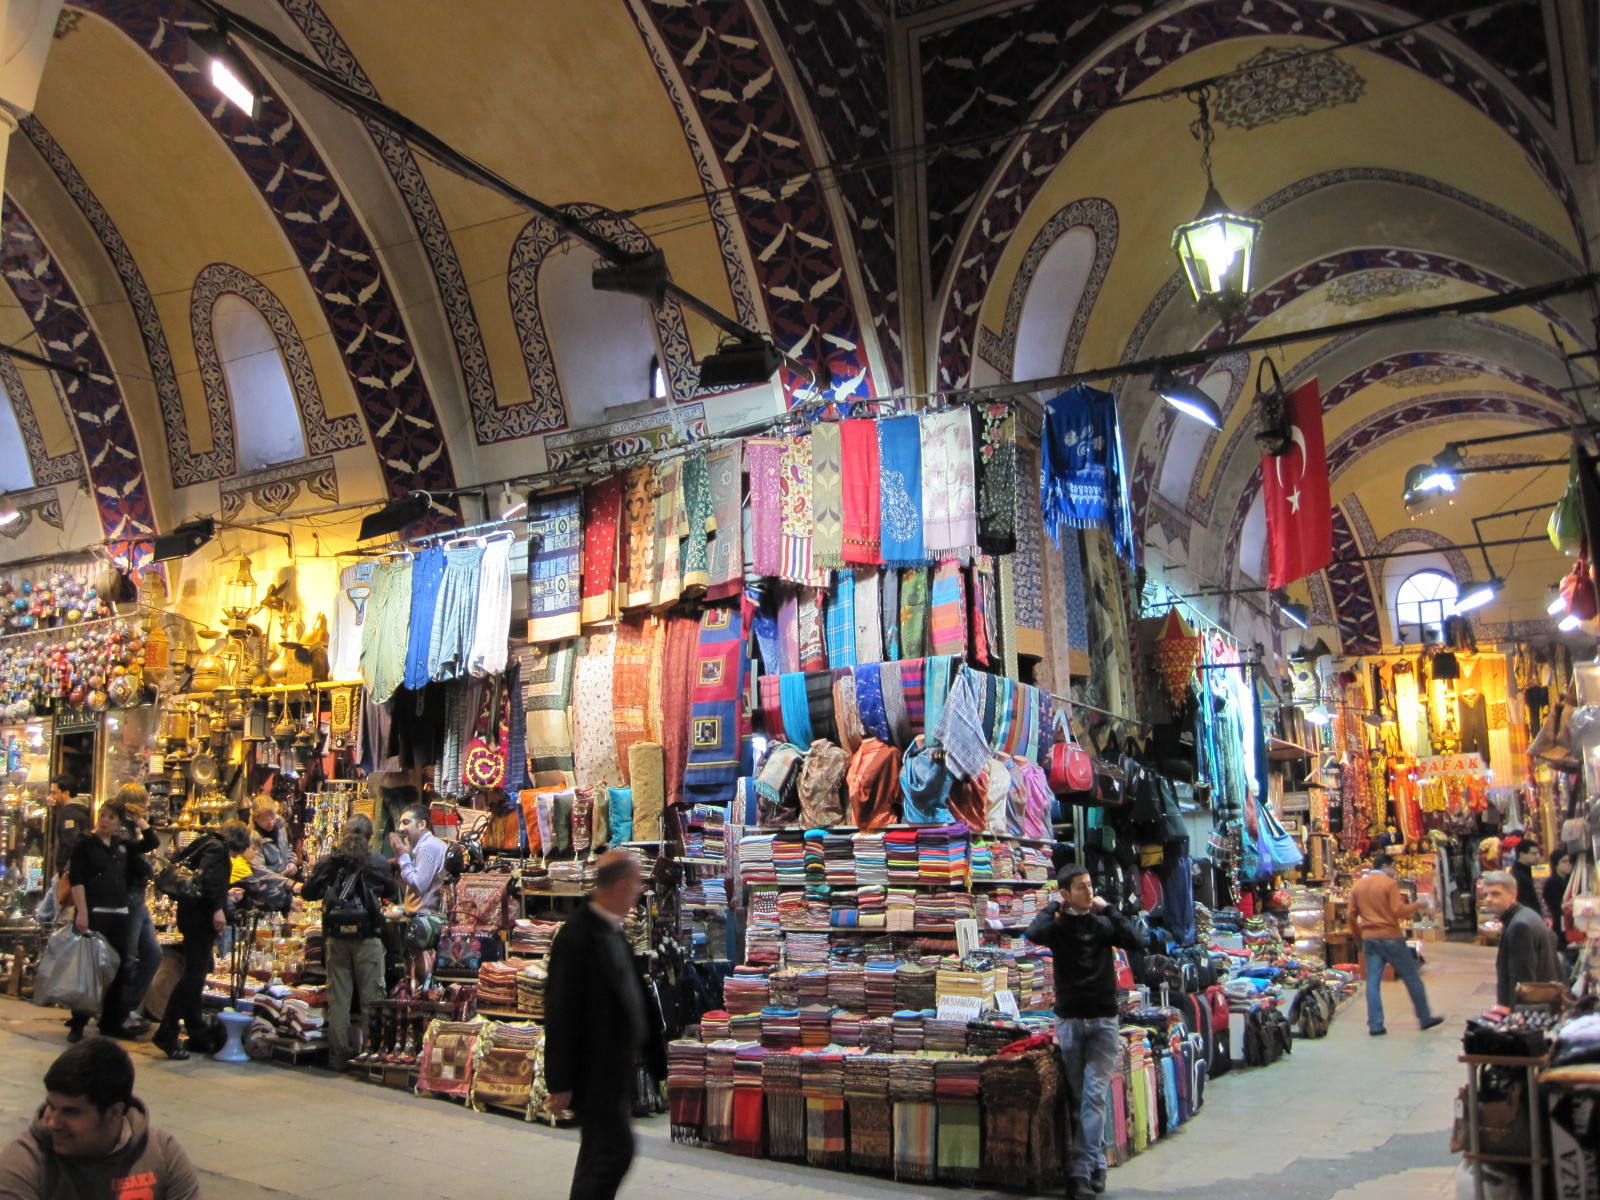 Textiles are displayed ceiling high in the Grand Bazaar. Istanbul, Turkey: annmariemershon.com